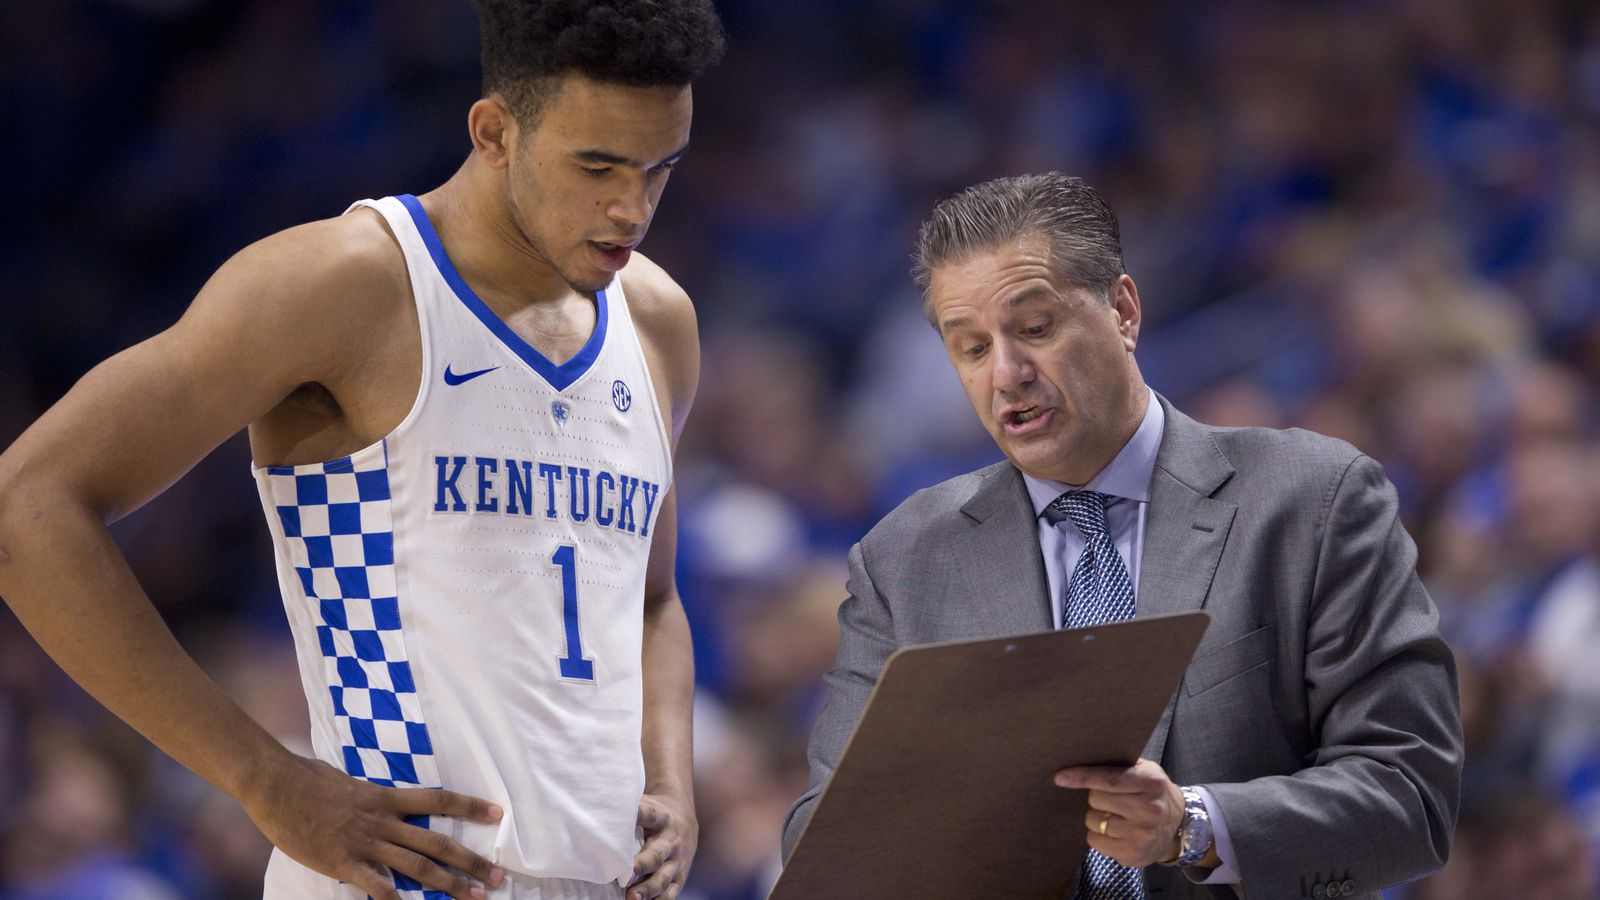 2013 Recruits Uk Basketball And Football Recruiting News: Kentucky Basketball Recruiting: John Calipari Talks